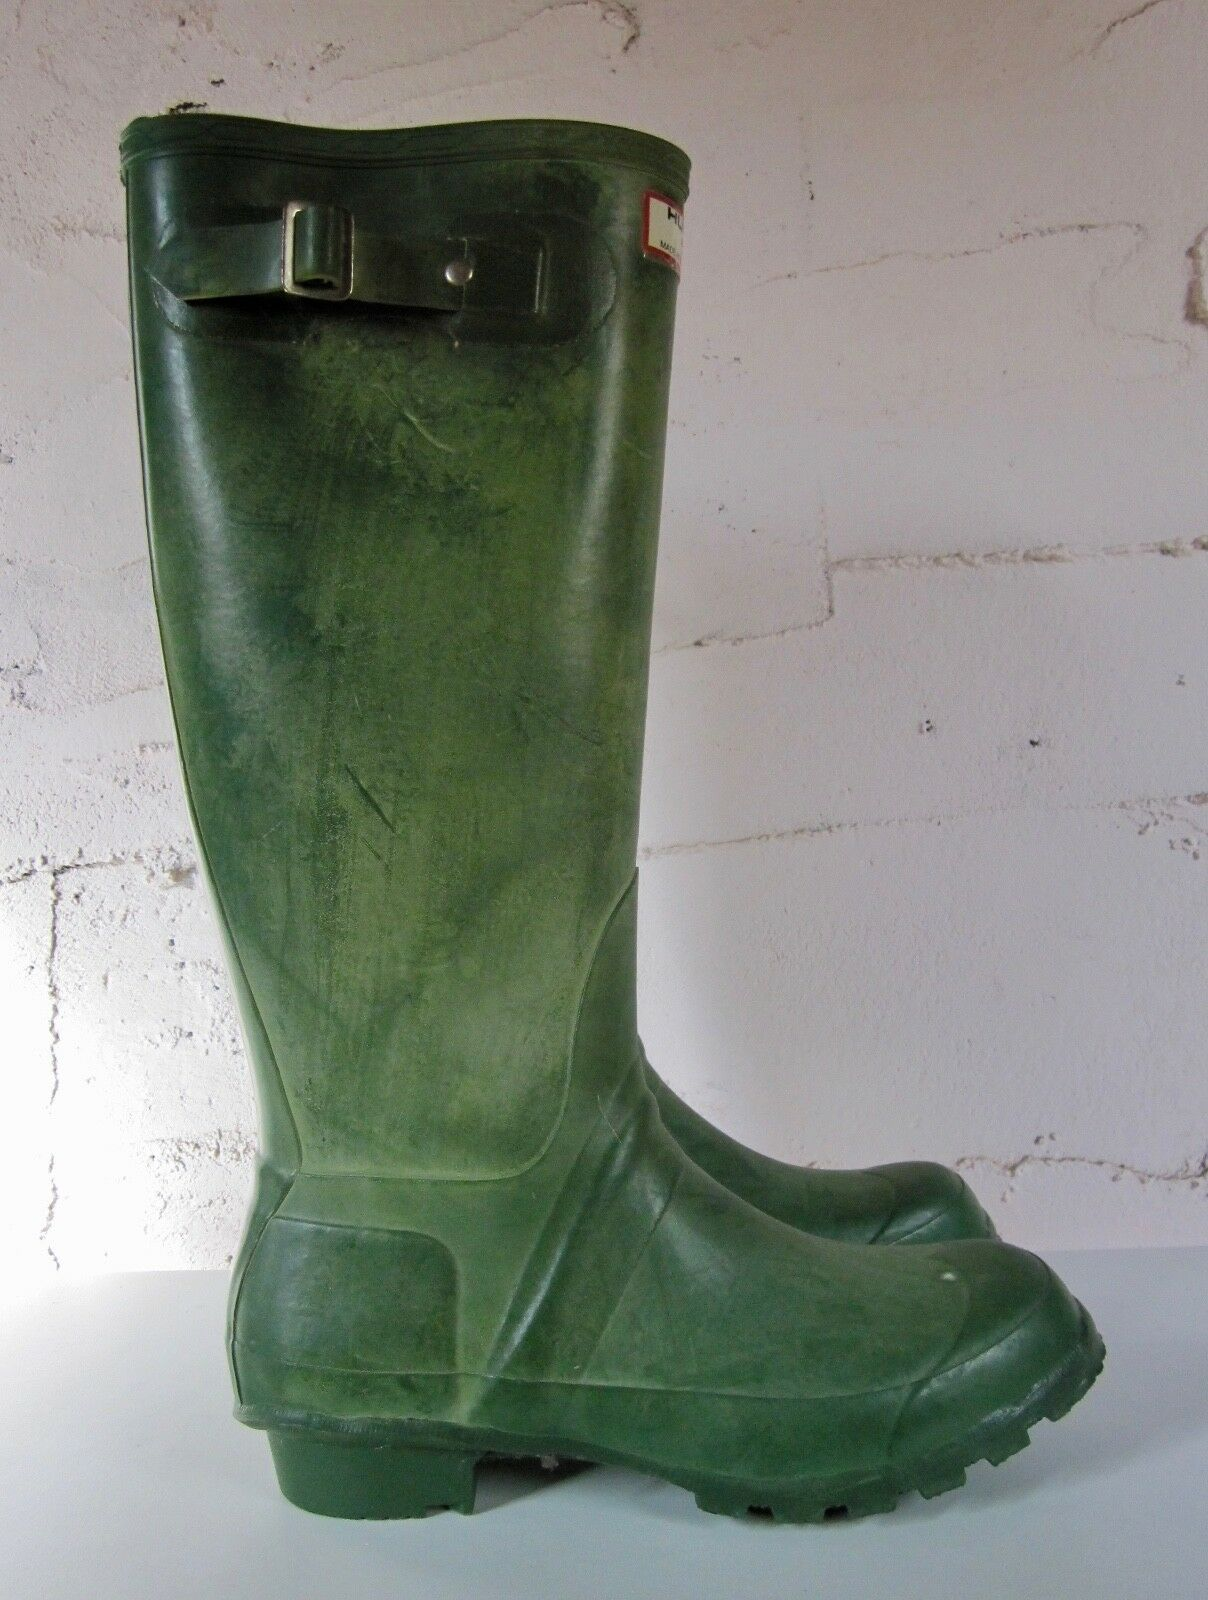 Vintage HUNTER Original Tall WELLIES Green Rubber Women's Boot, size 7